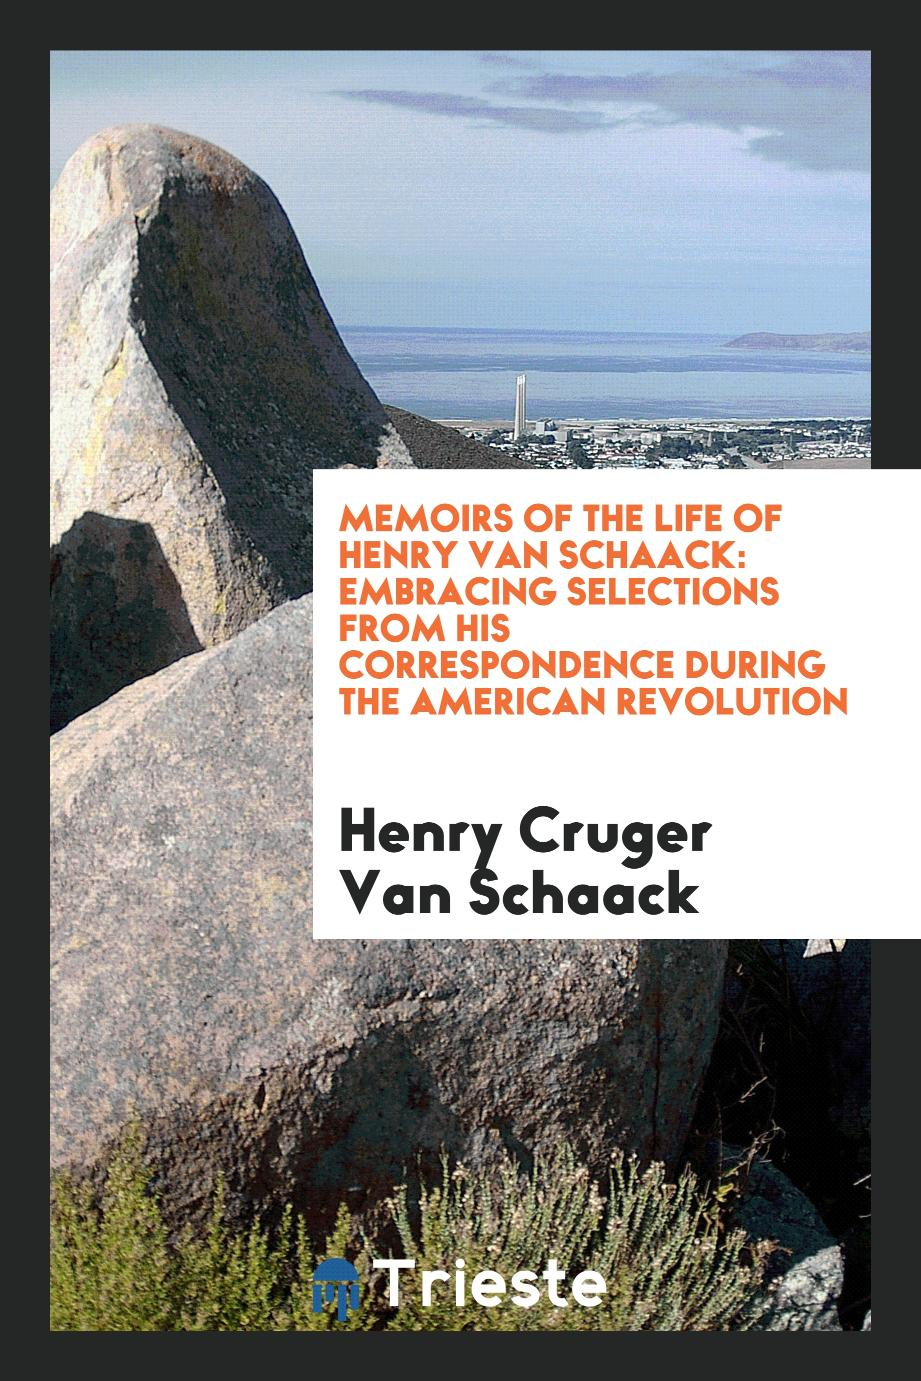 Memoirs of the Life of Henry Van Schaack: Embracing Selections from His Correspondence During the American Revolution